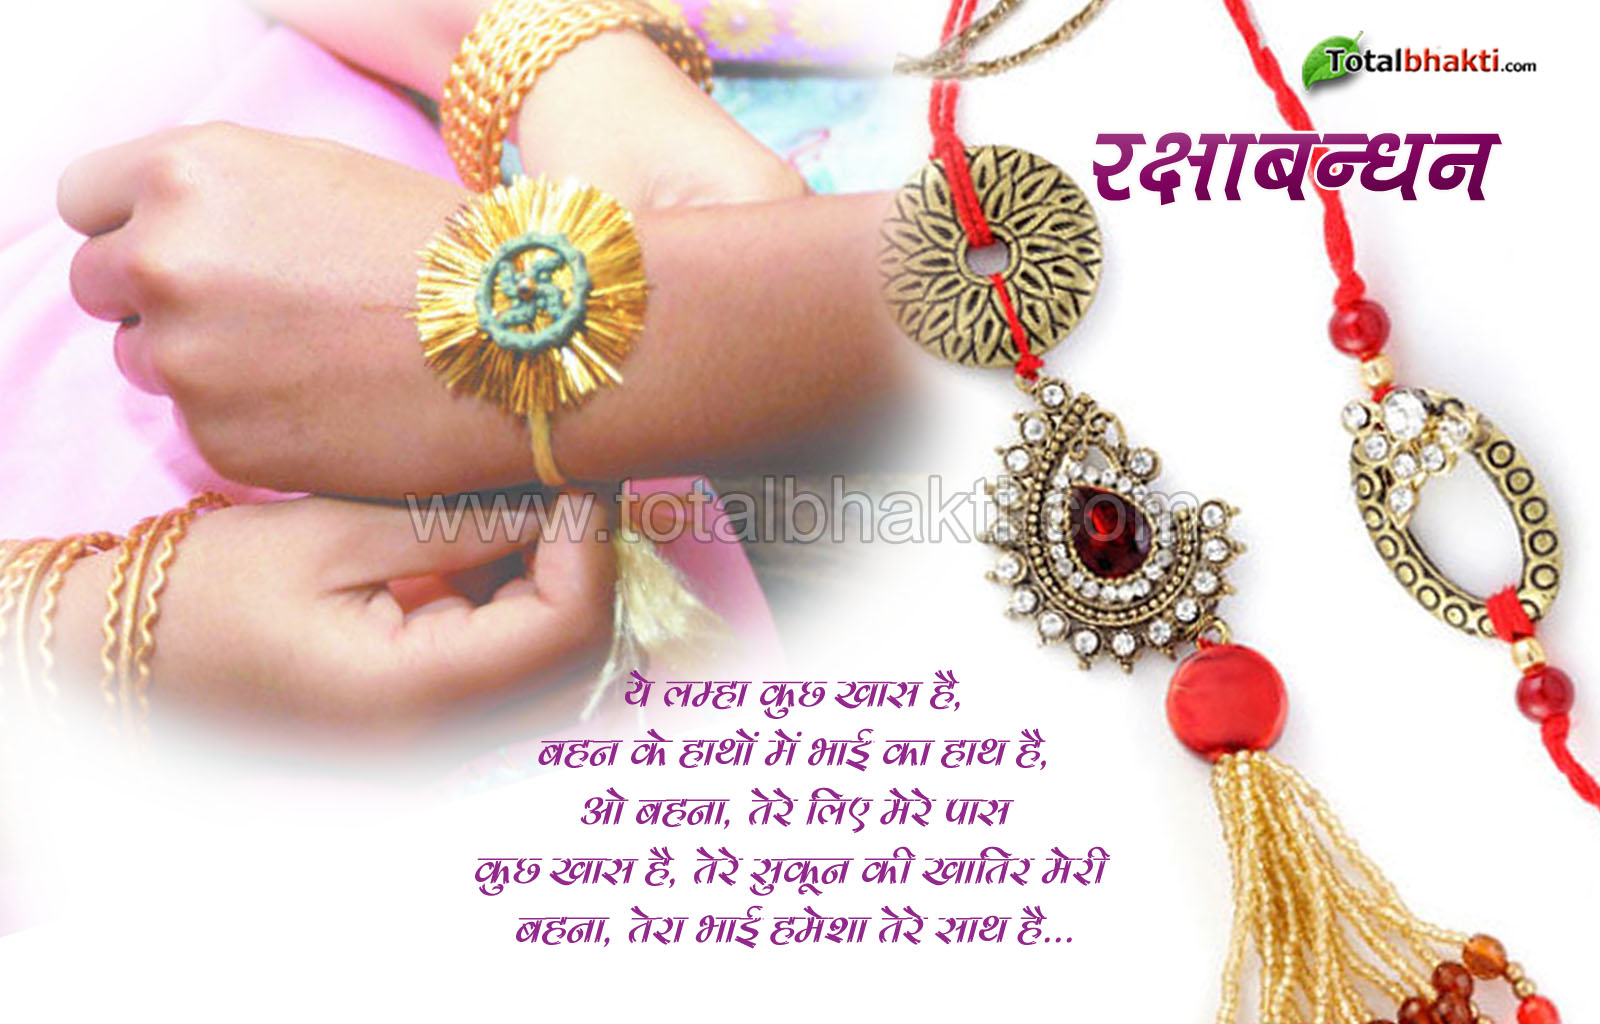 how to write a letter to brother on raksha bandhan images letter  hindi essay on raksha bandhan raksha bandhan hd images photos best raksha bandhan images hd hd